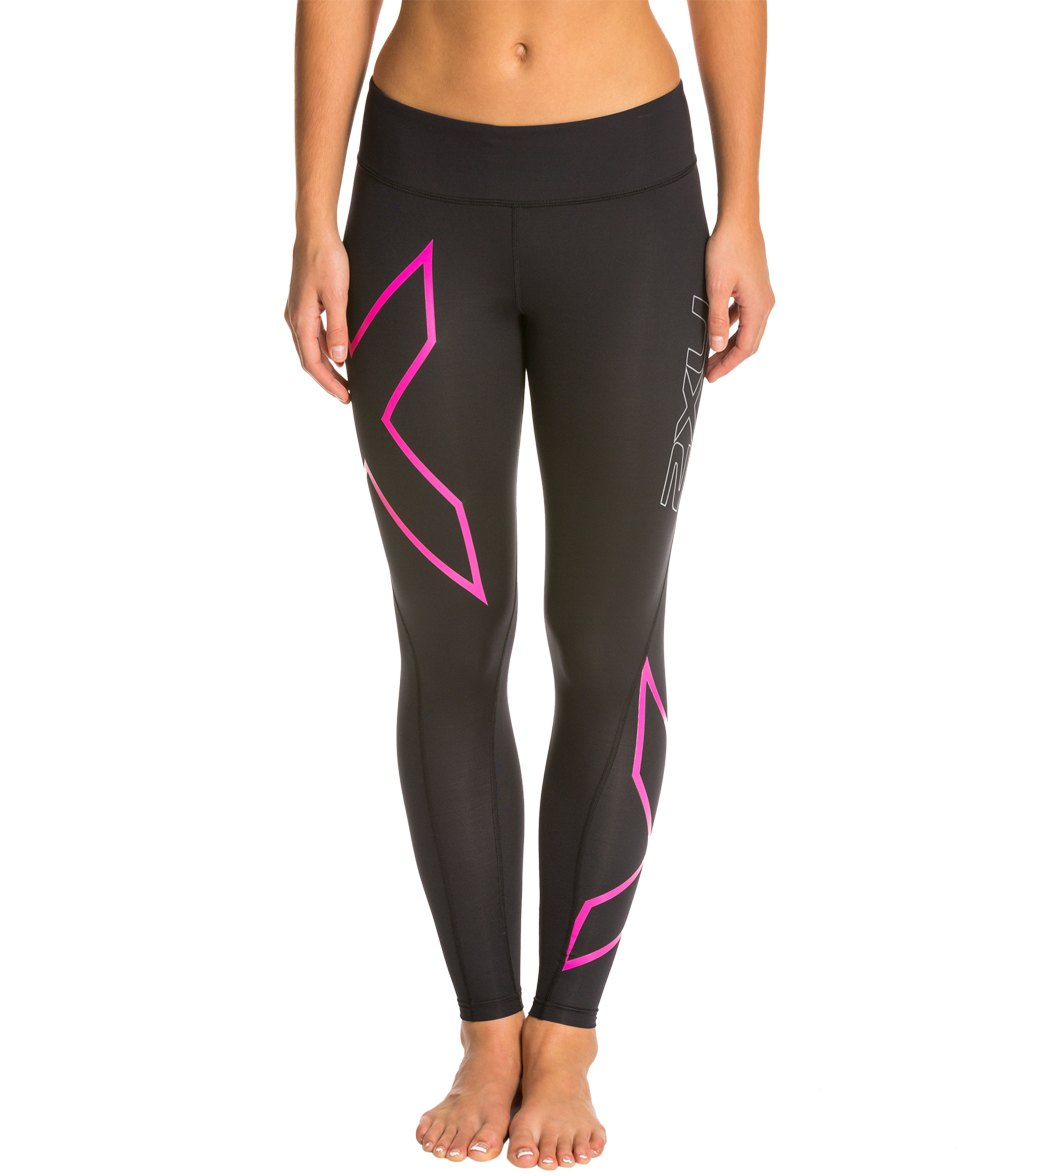 00d2860dd8d9f 2XU Women's Breast Cancer Awareness Mid-Rise Compression Tights at  SwimOutlet.com - Free Shipping